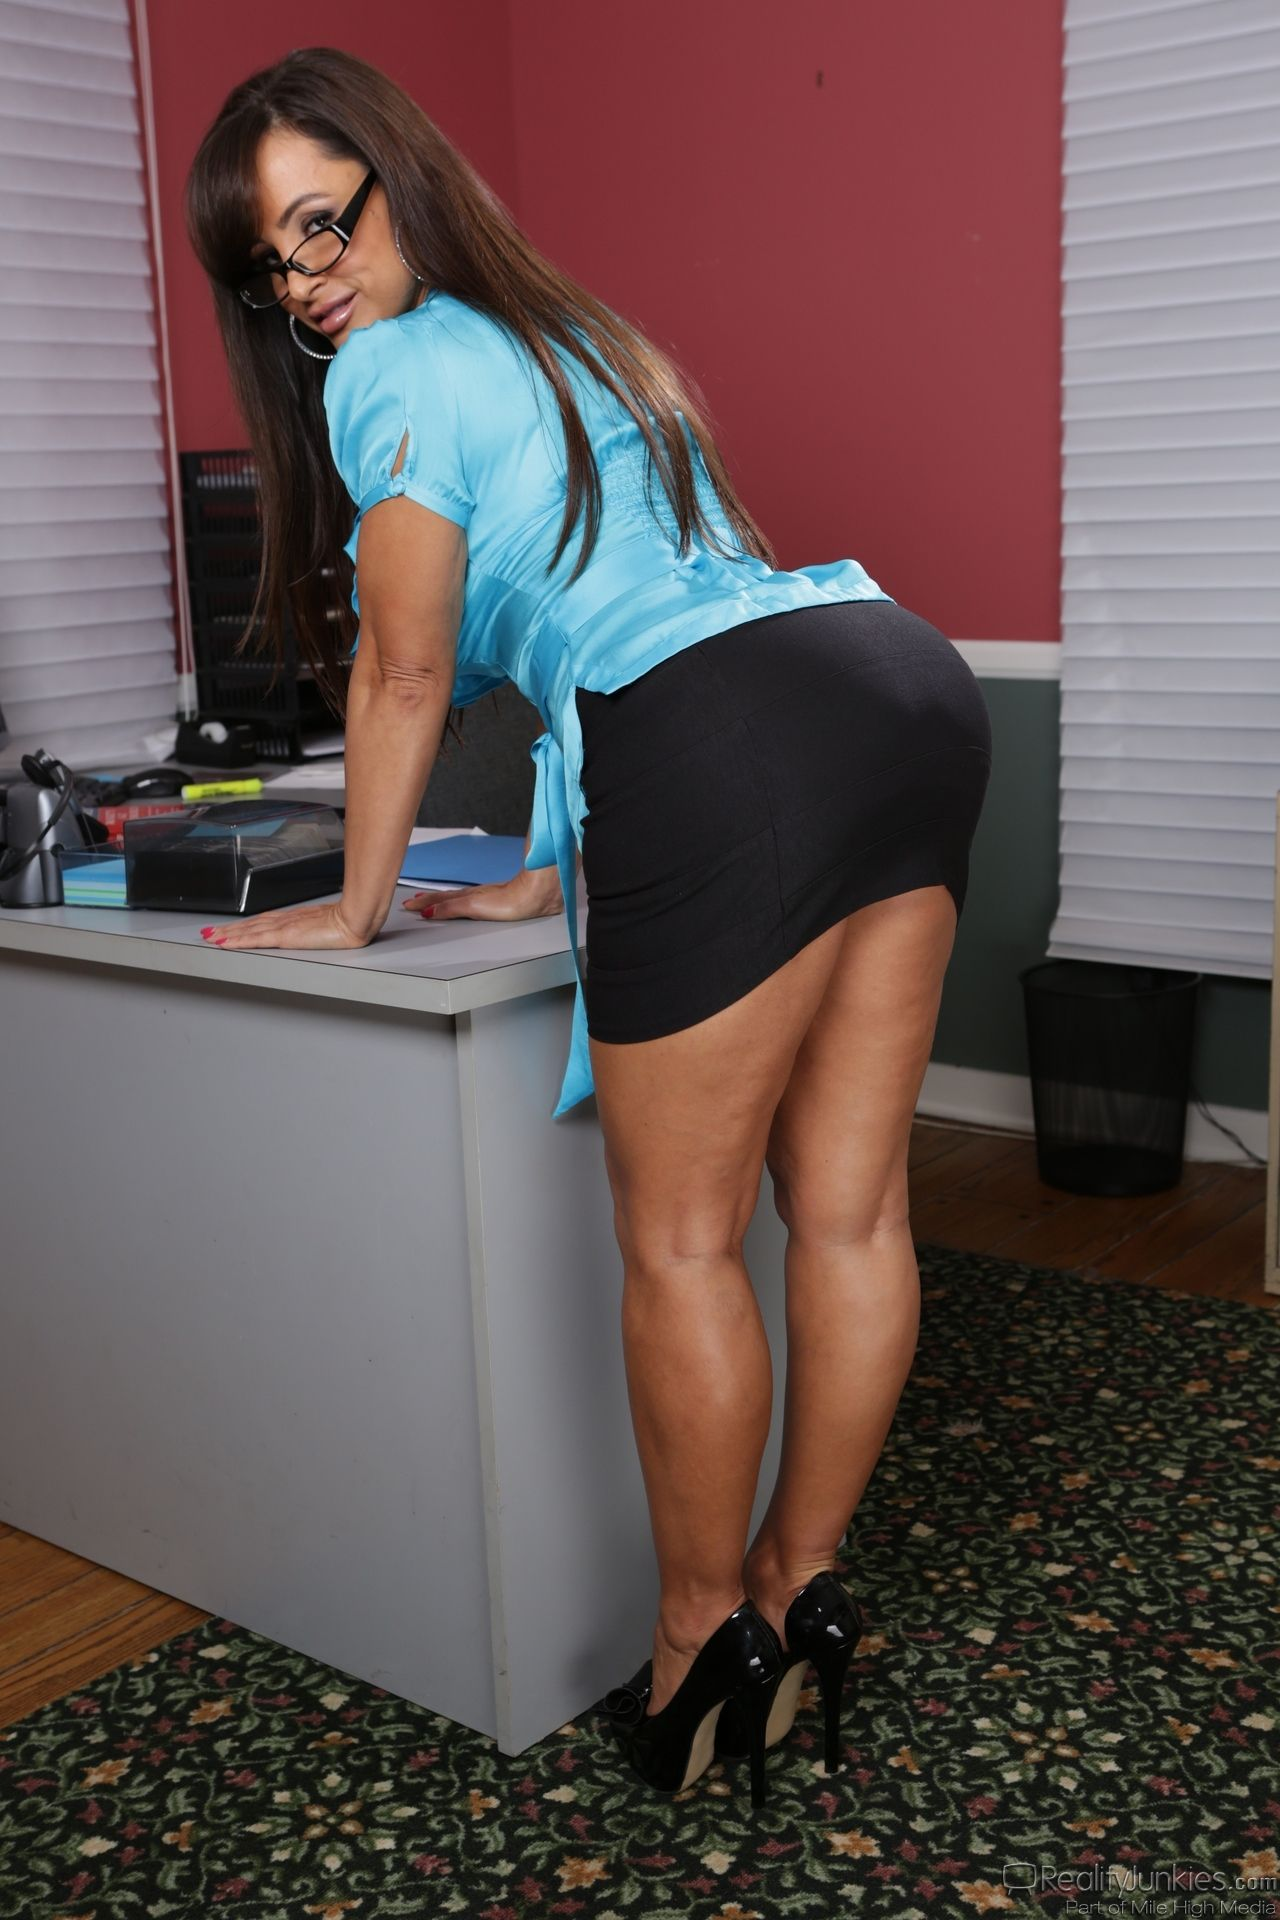 Arrange Living Room Furniture Small Apartment 3 Piece Sets Lisa Ann - Hot Thighs In The Office | Pinterest ...